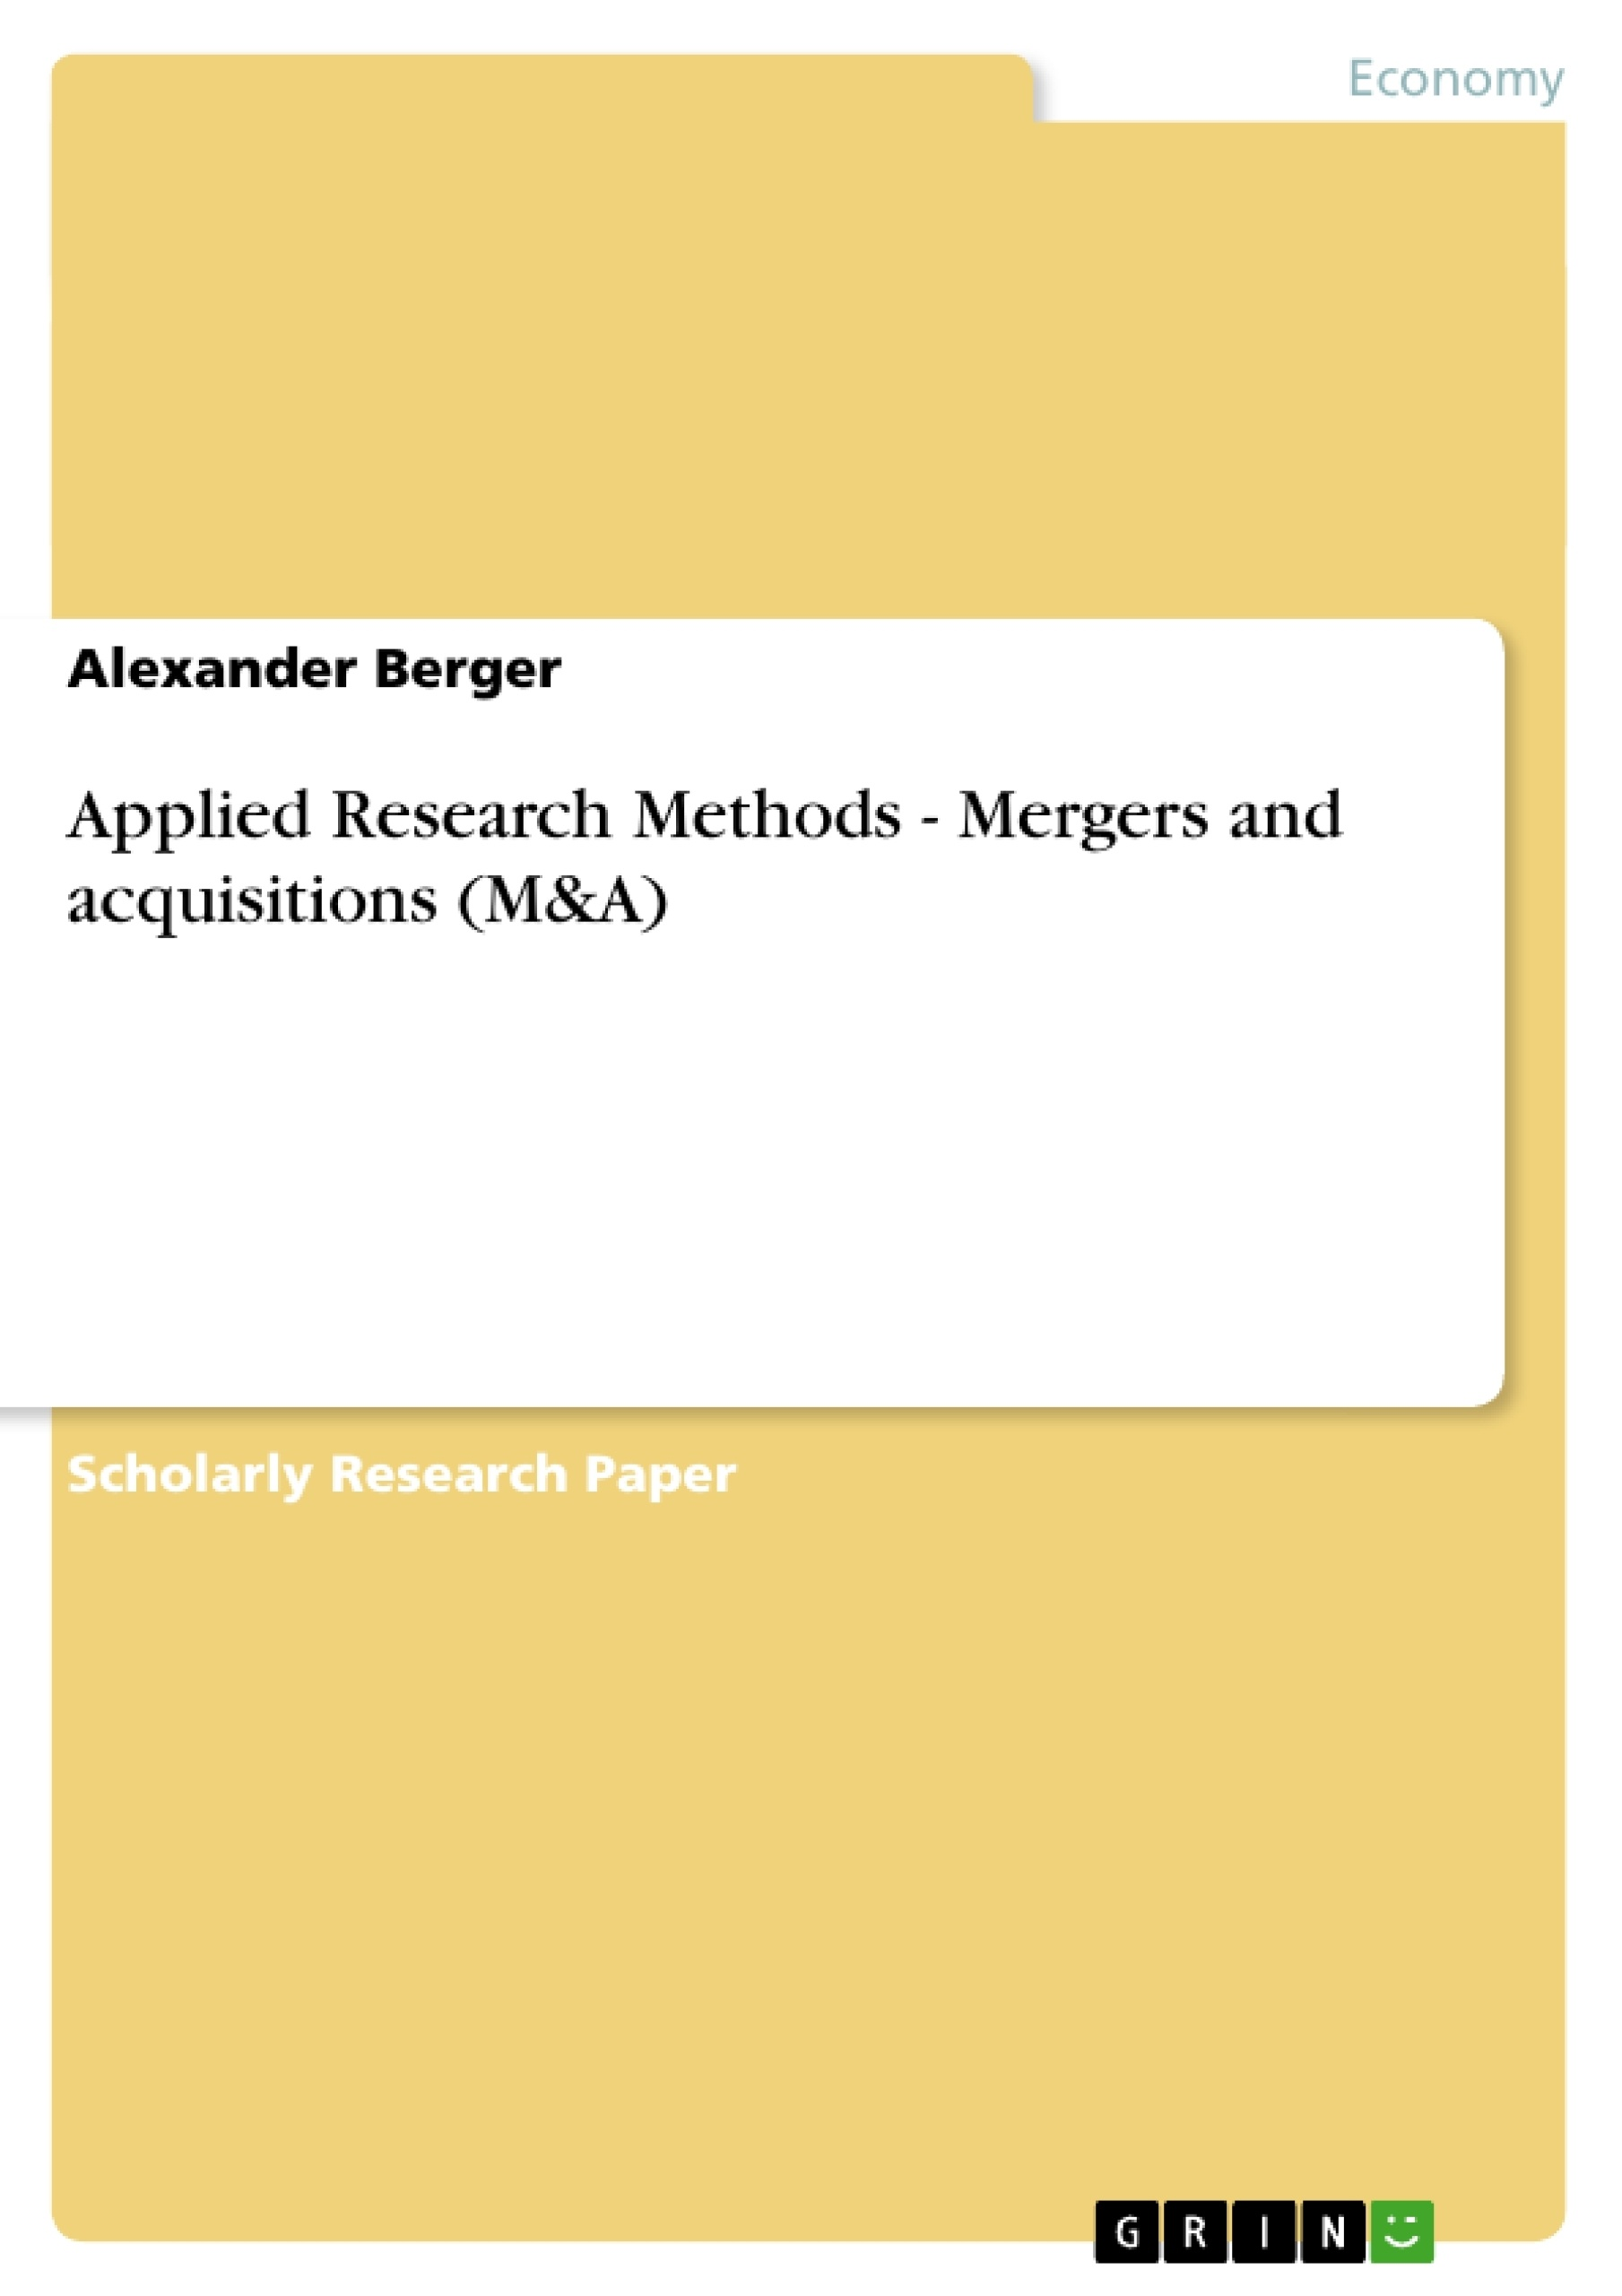 Mergers research paper